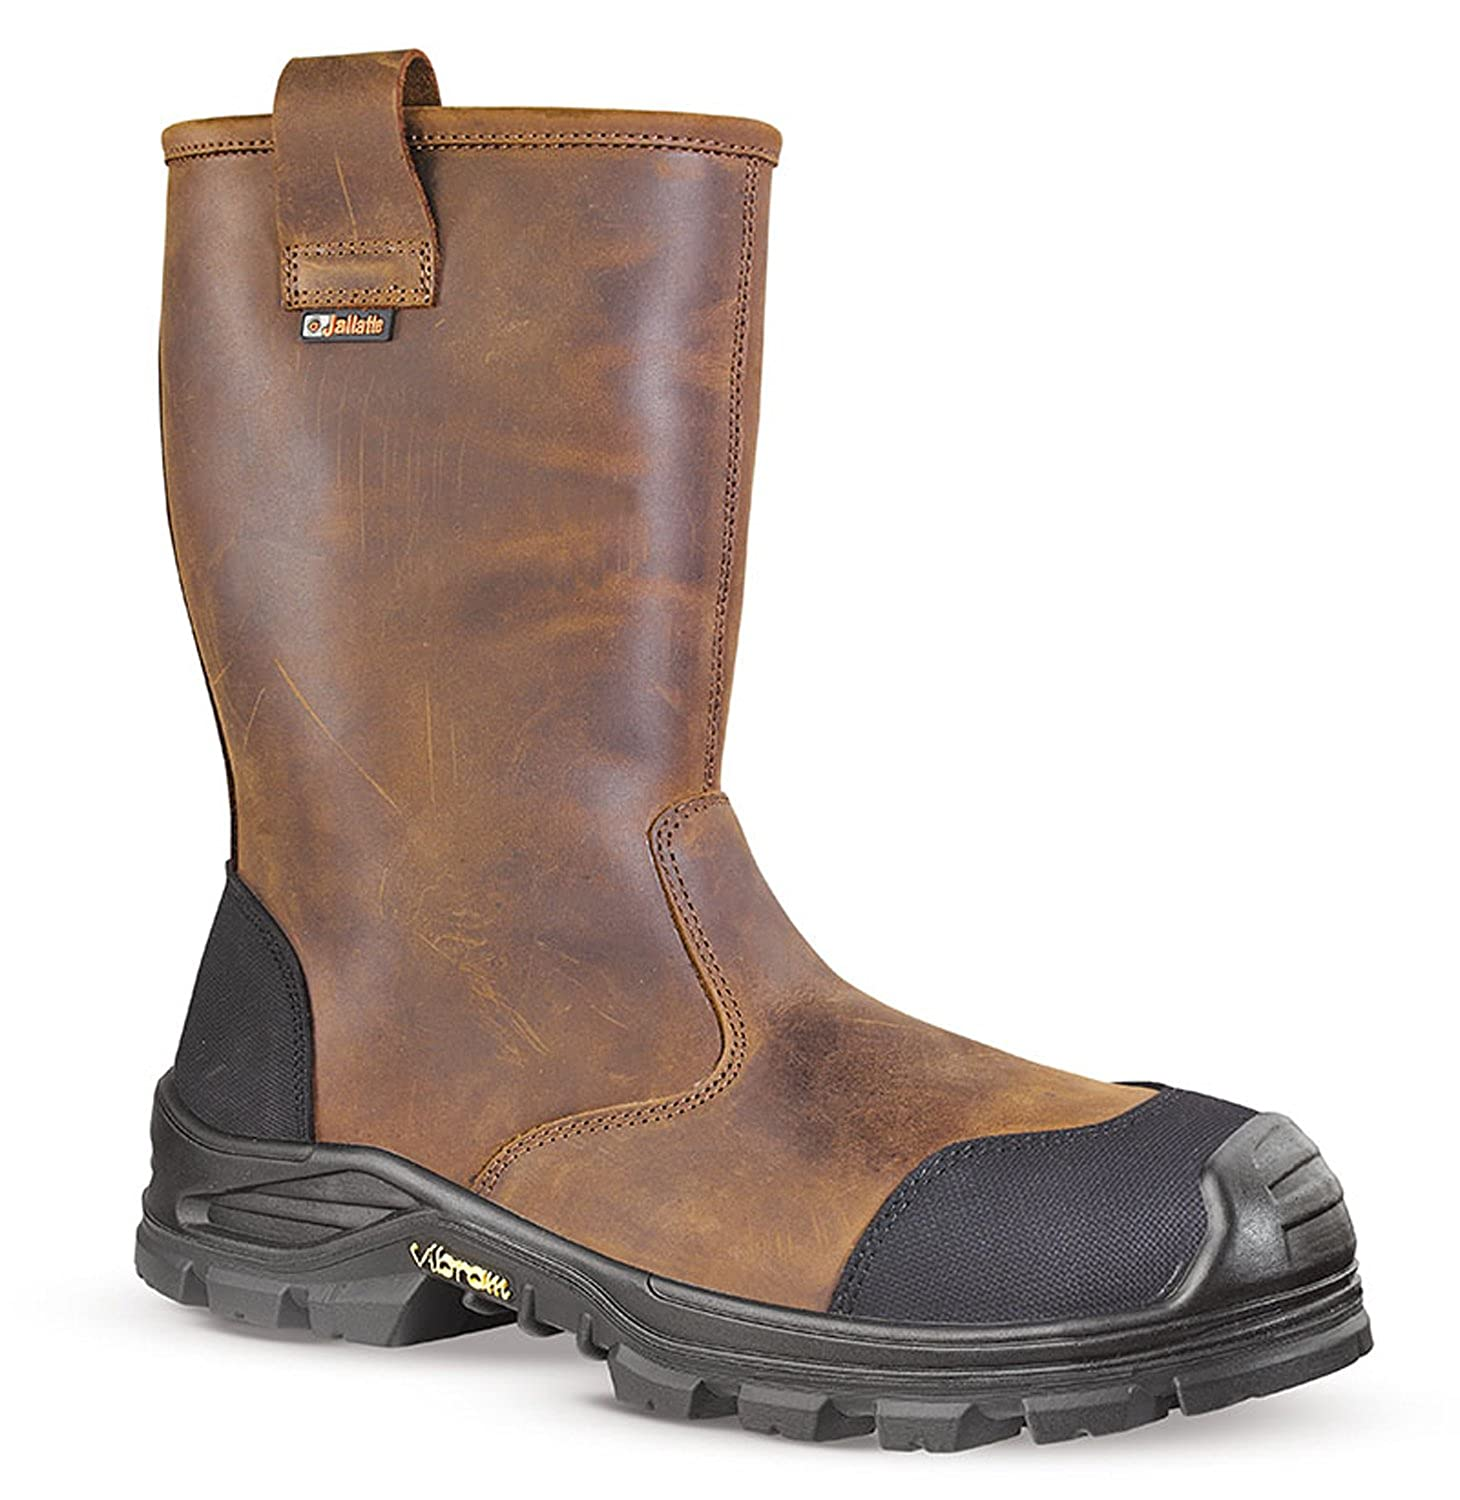 35c3ce68734 Jallatte Jalsalix Brown Greasy Leather Mens Vibram Safety S3 Toecap Misole  Rigger Boots